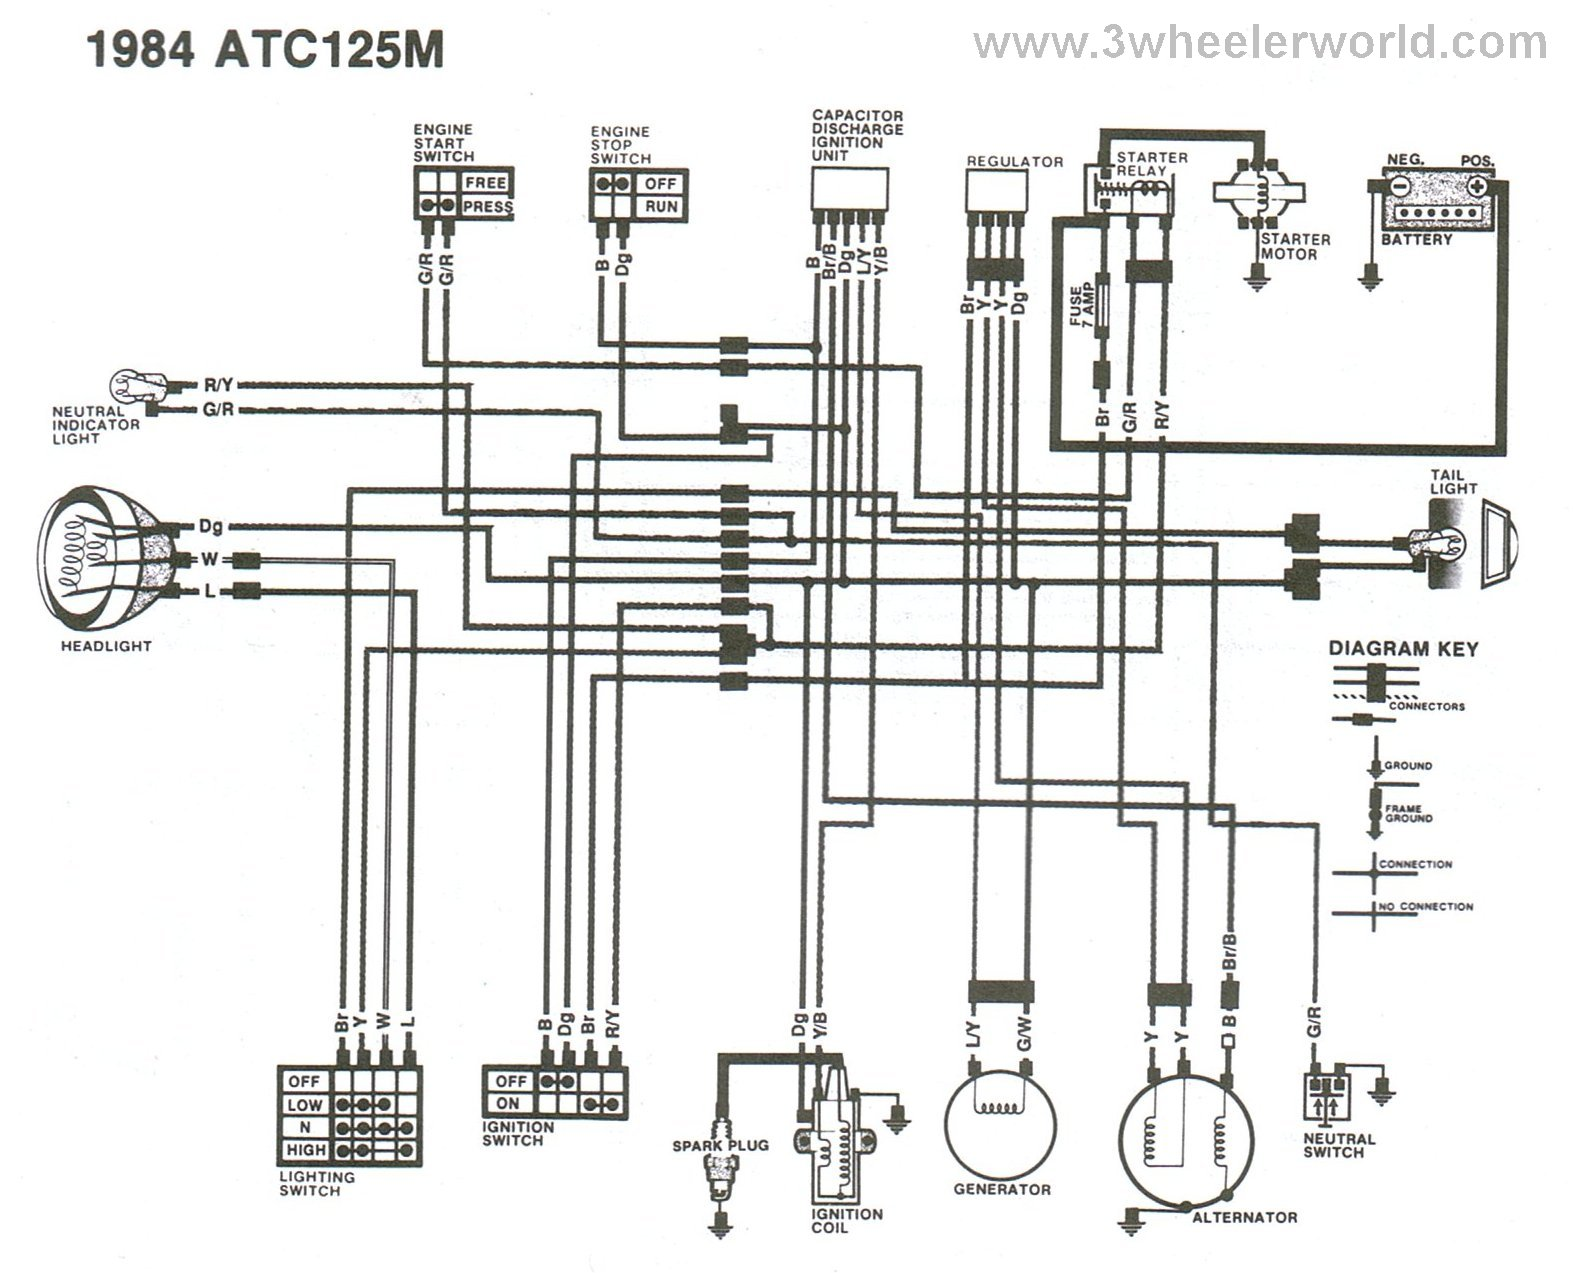 1986 Honda Civic Wiring Diagram Just Schematic 2003 200sx Schematics Distributor